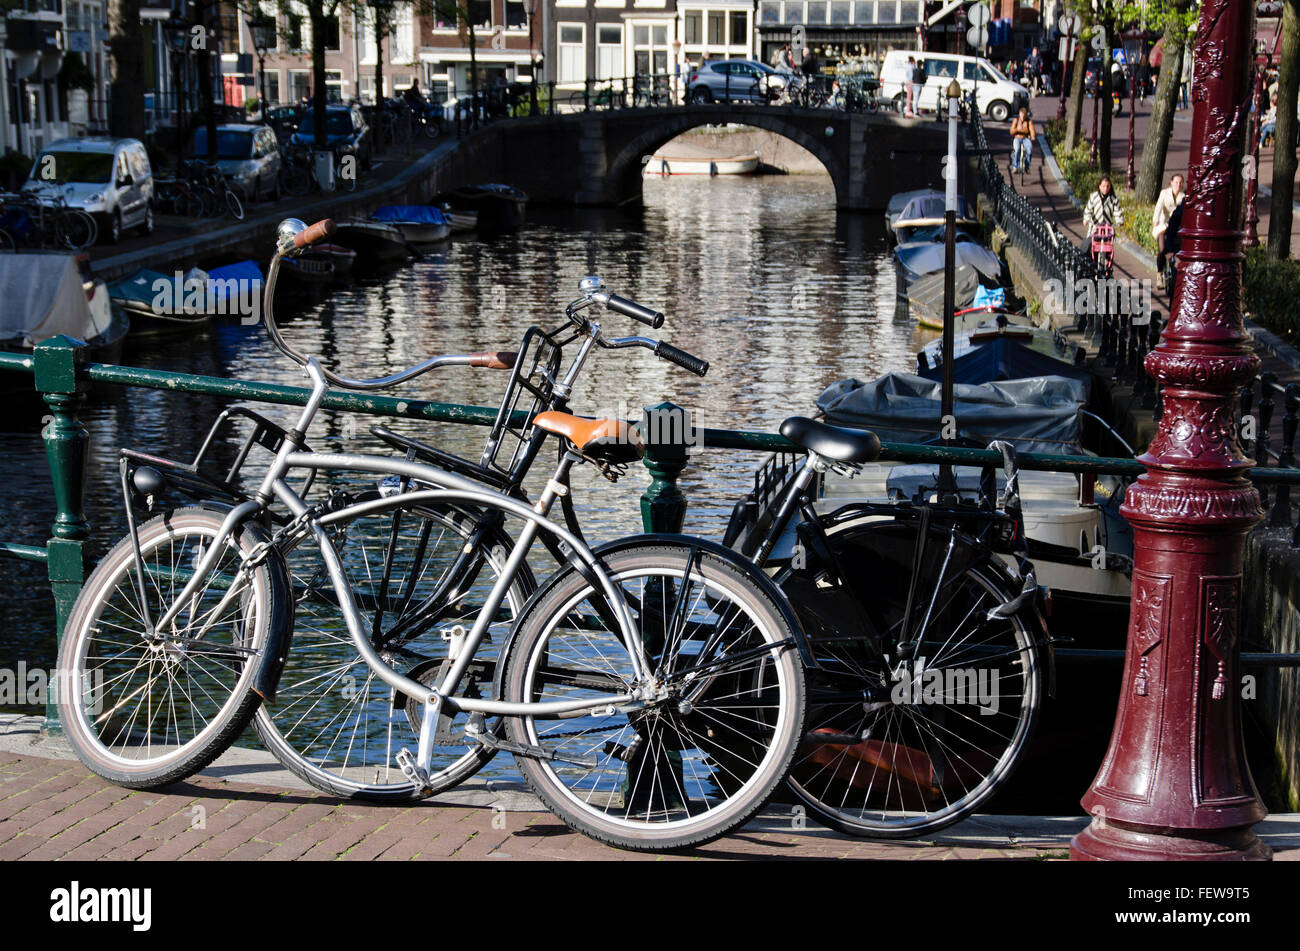 Amsterdam, Holland, Canal - May 7, 2016: two bikes on bridge over canal - Stock Image